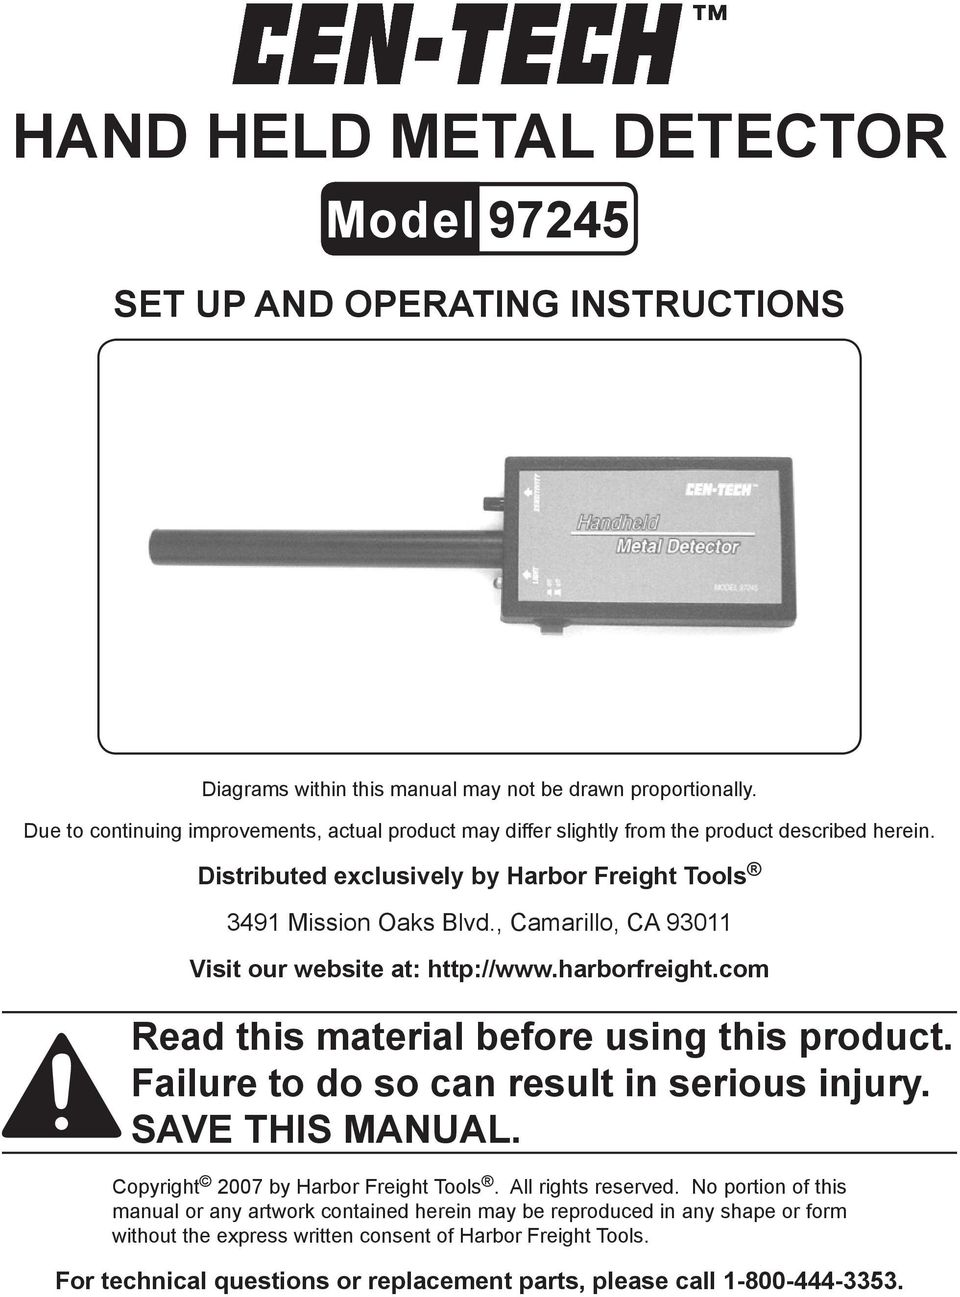 , Camarillo, CA 93011 Visit our website at: http://www.harborfreight.com Read this material before using this product. Failure to do so can result in serious injury. Save this manual.